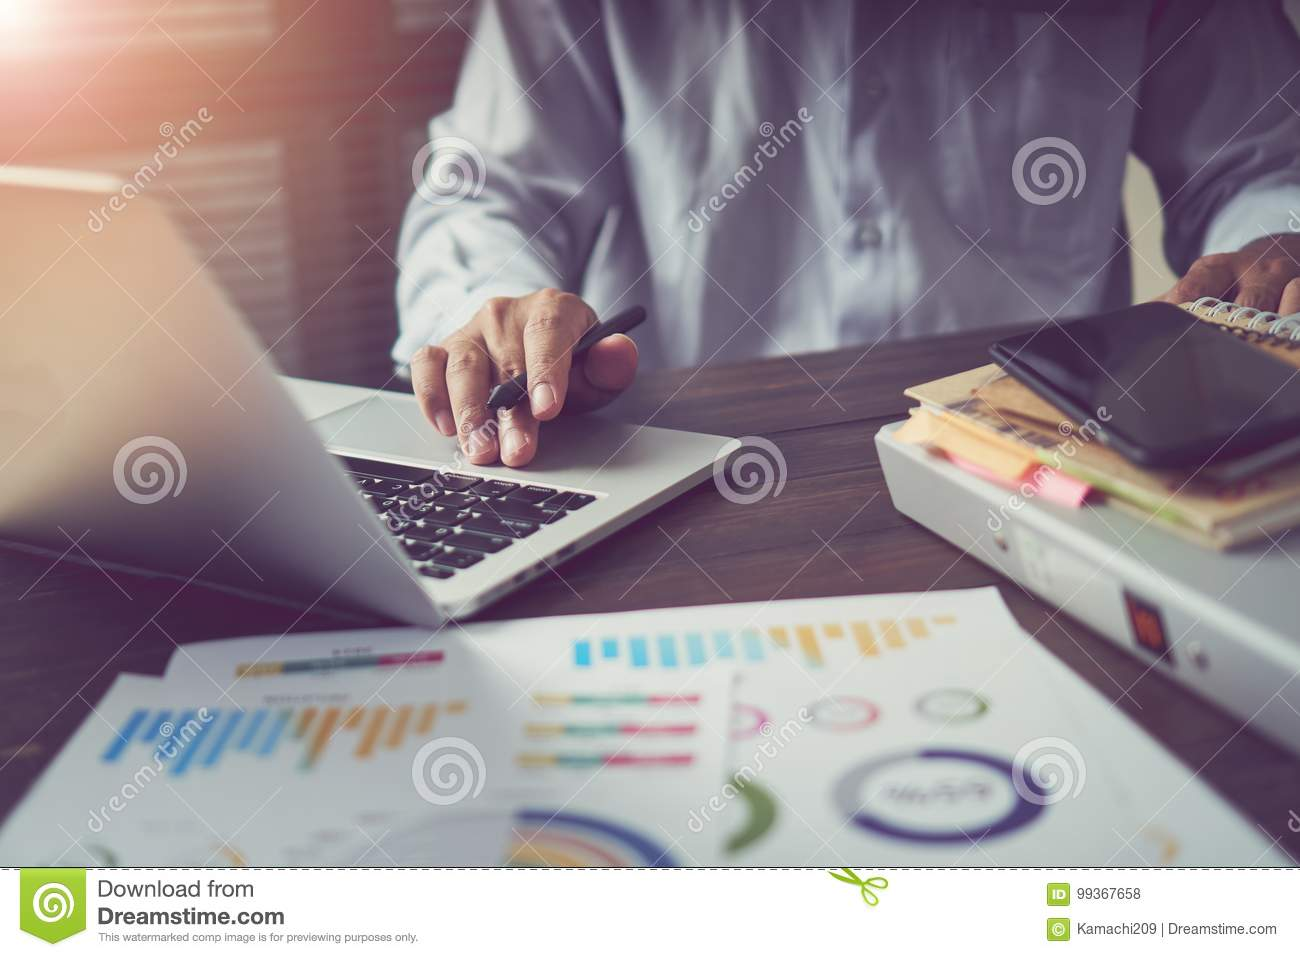 Businessman hand working laptop on wooden desk in office in morning light. The concept of modern work with advanced technology.